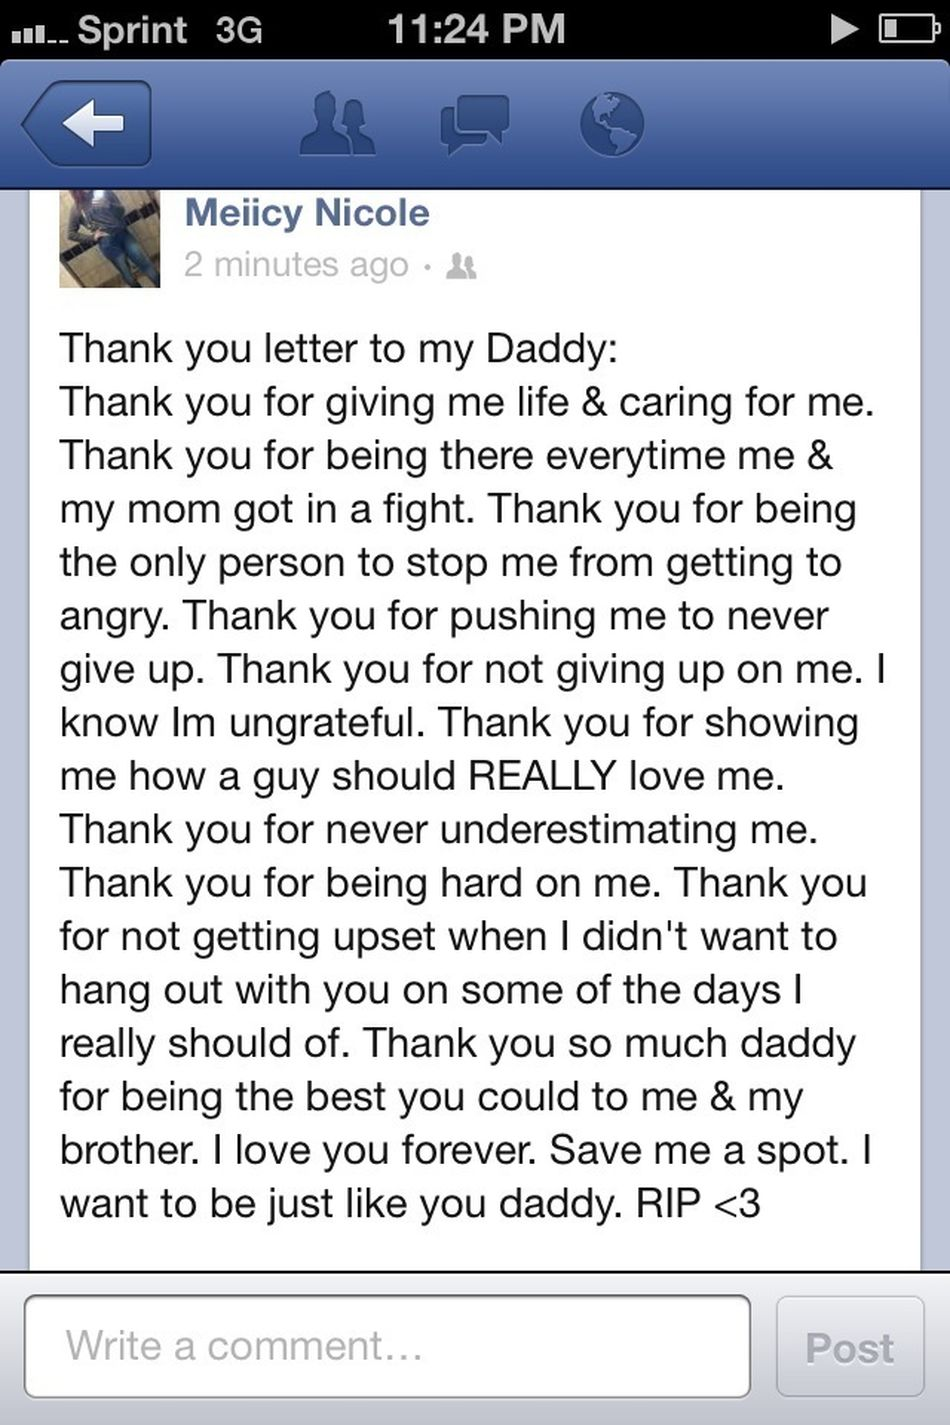 Thank You Daddy.. RIP